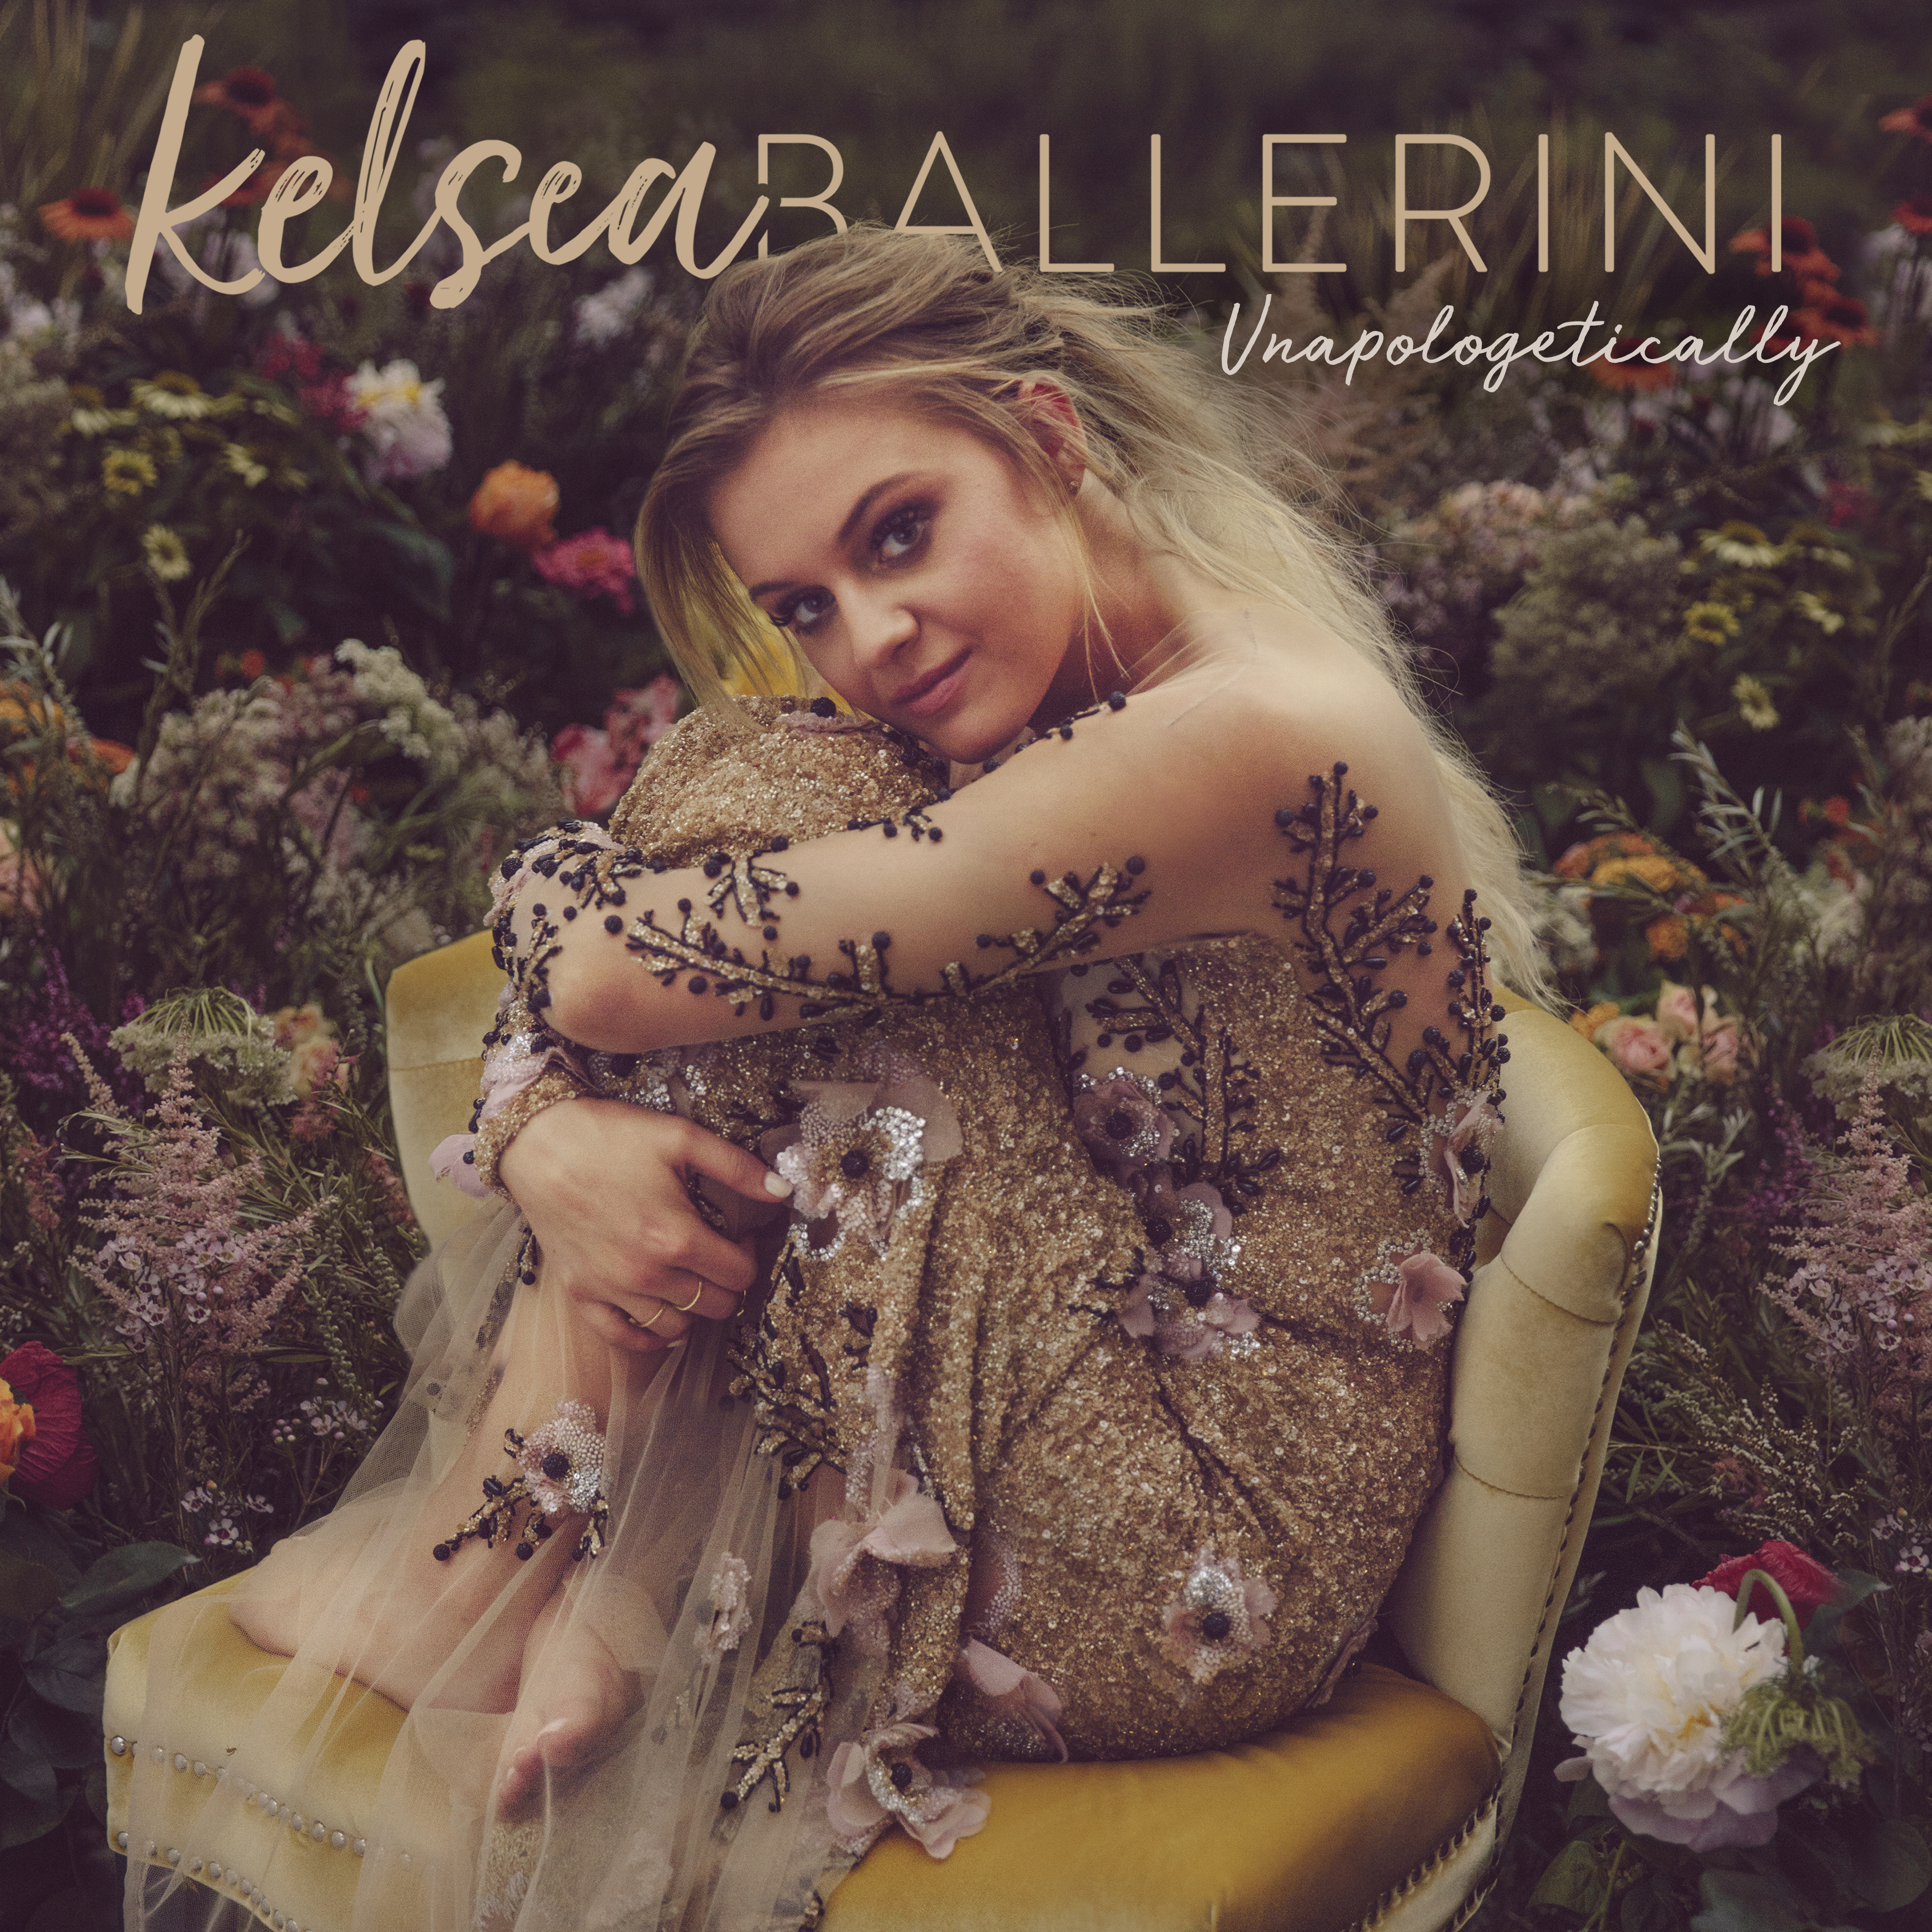 Kelsea Ballerini is Unapologetically returning home to celebrate following international support